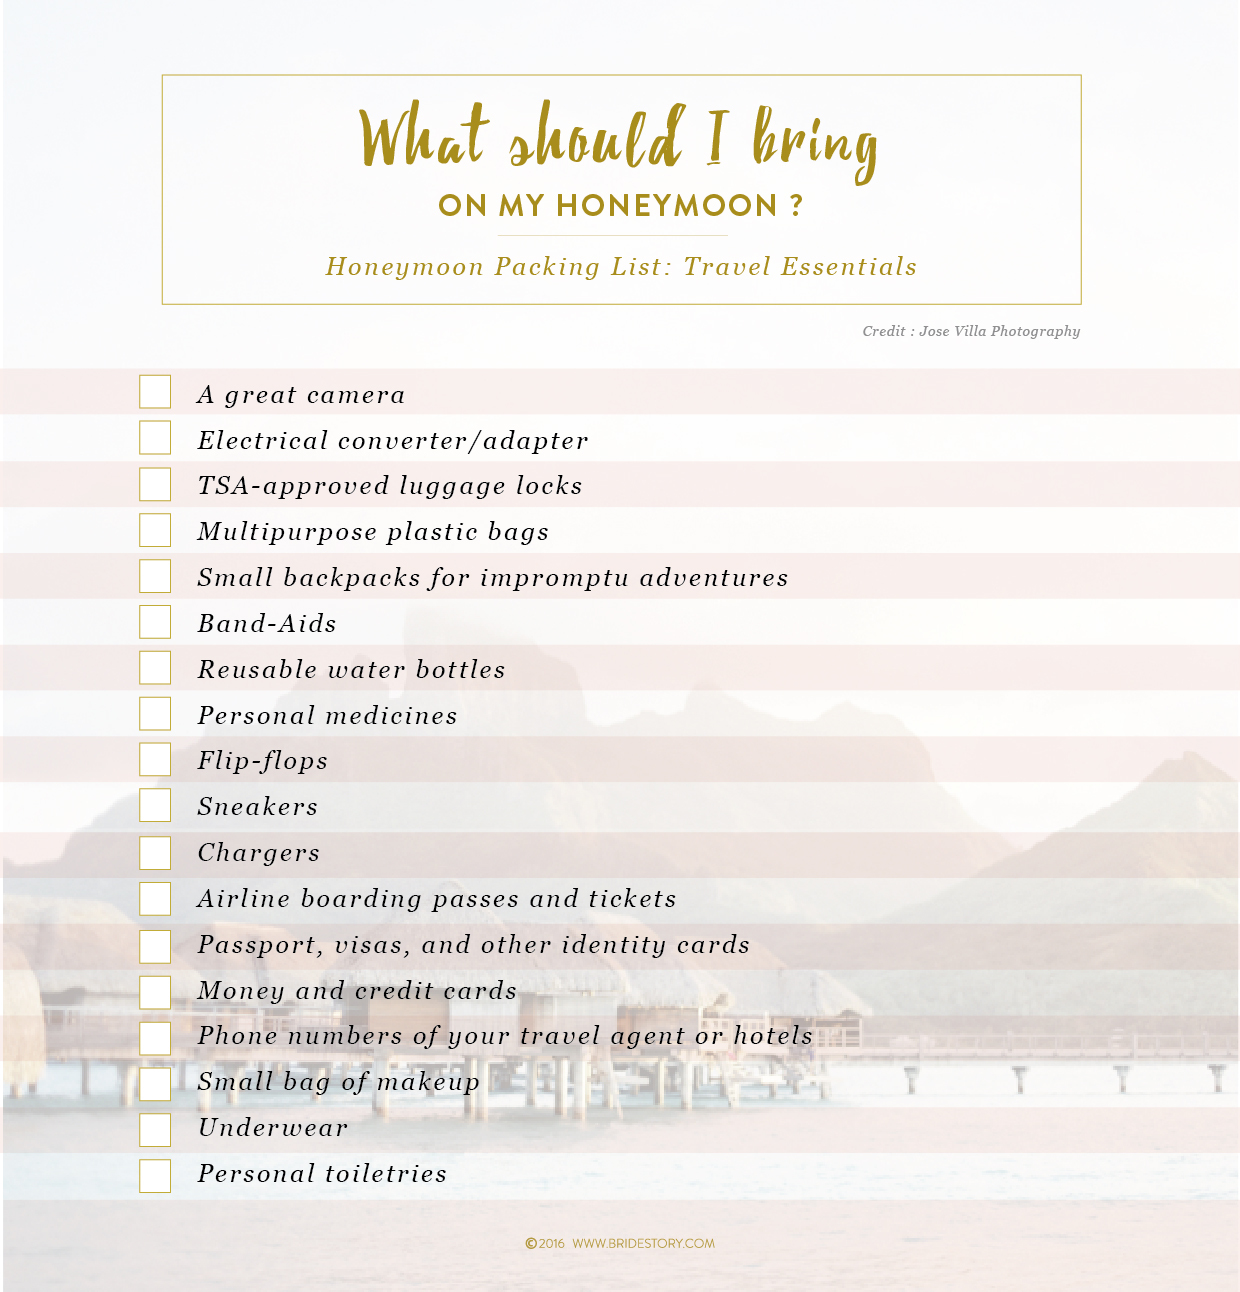 Honeymoon 101: Preparation and Packing Lists  Image 1